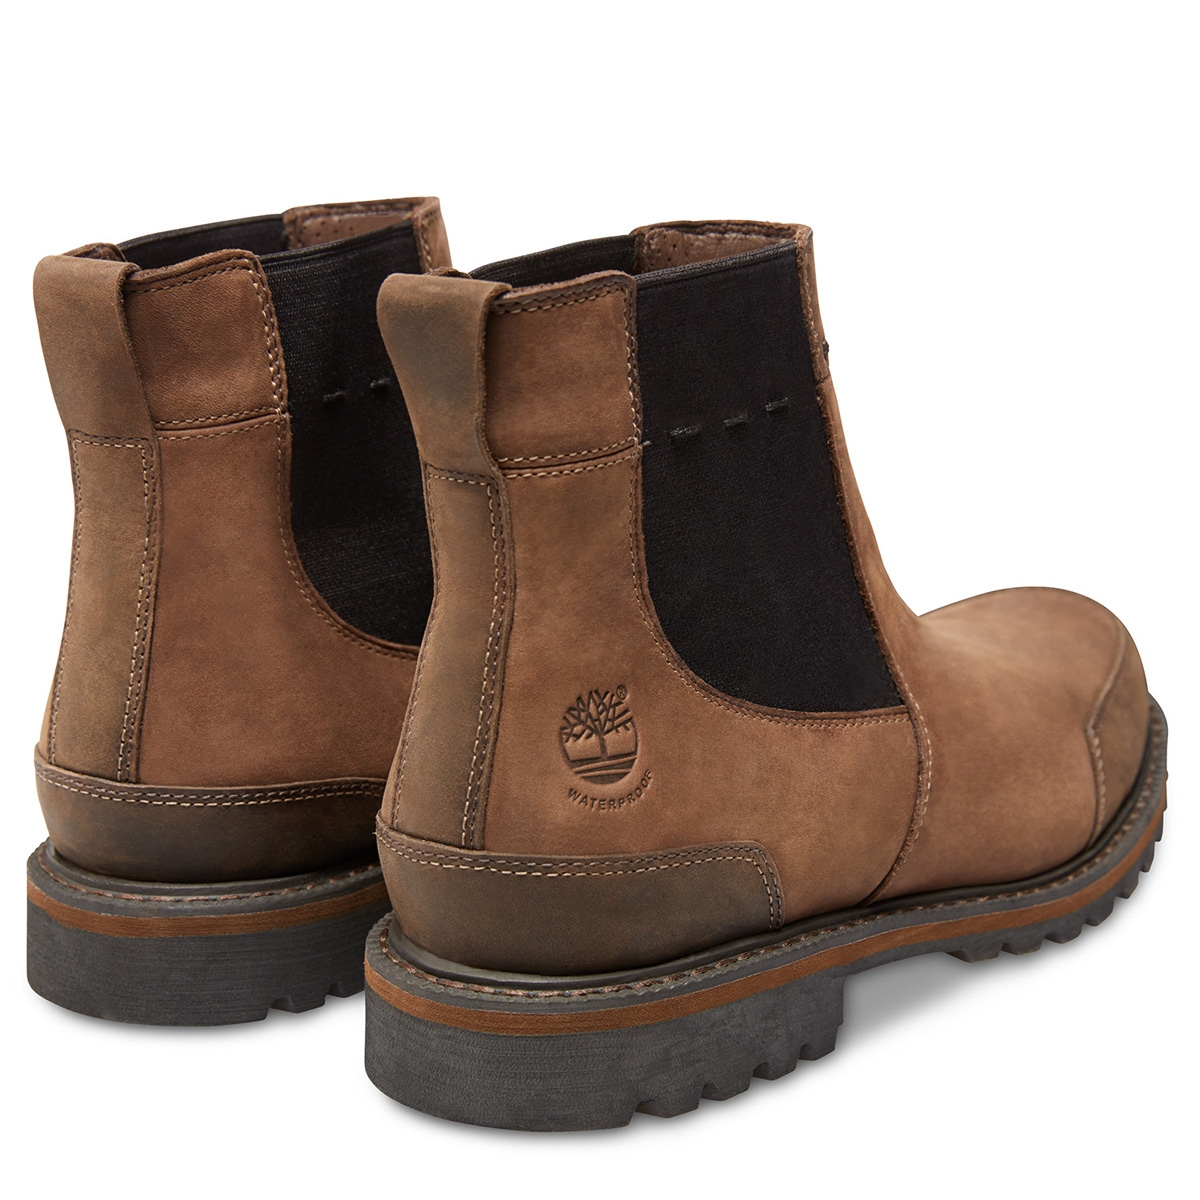 new styles 3317f f5865 Timberland Earthkeepers Chestnut Ridge Chelsea Boots (Men's) - Dark Brown  Oiled